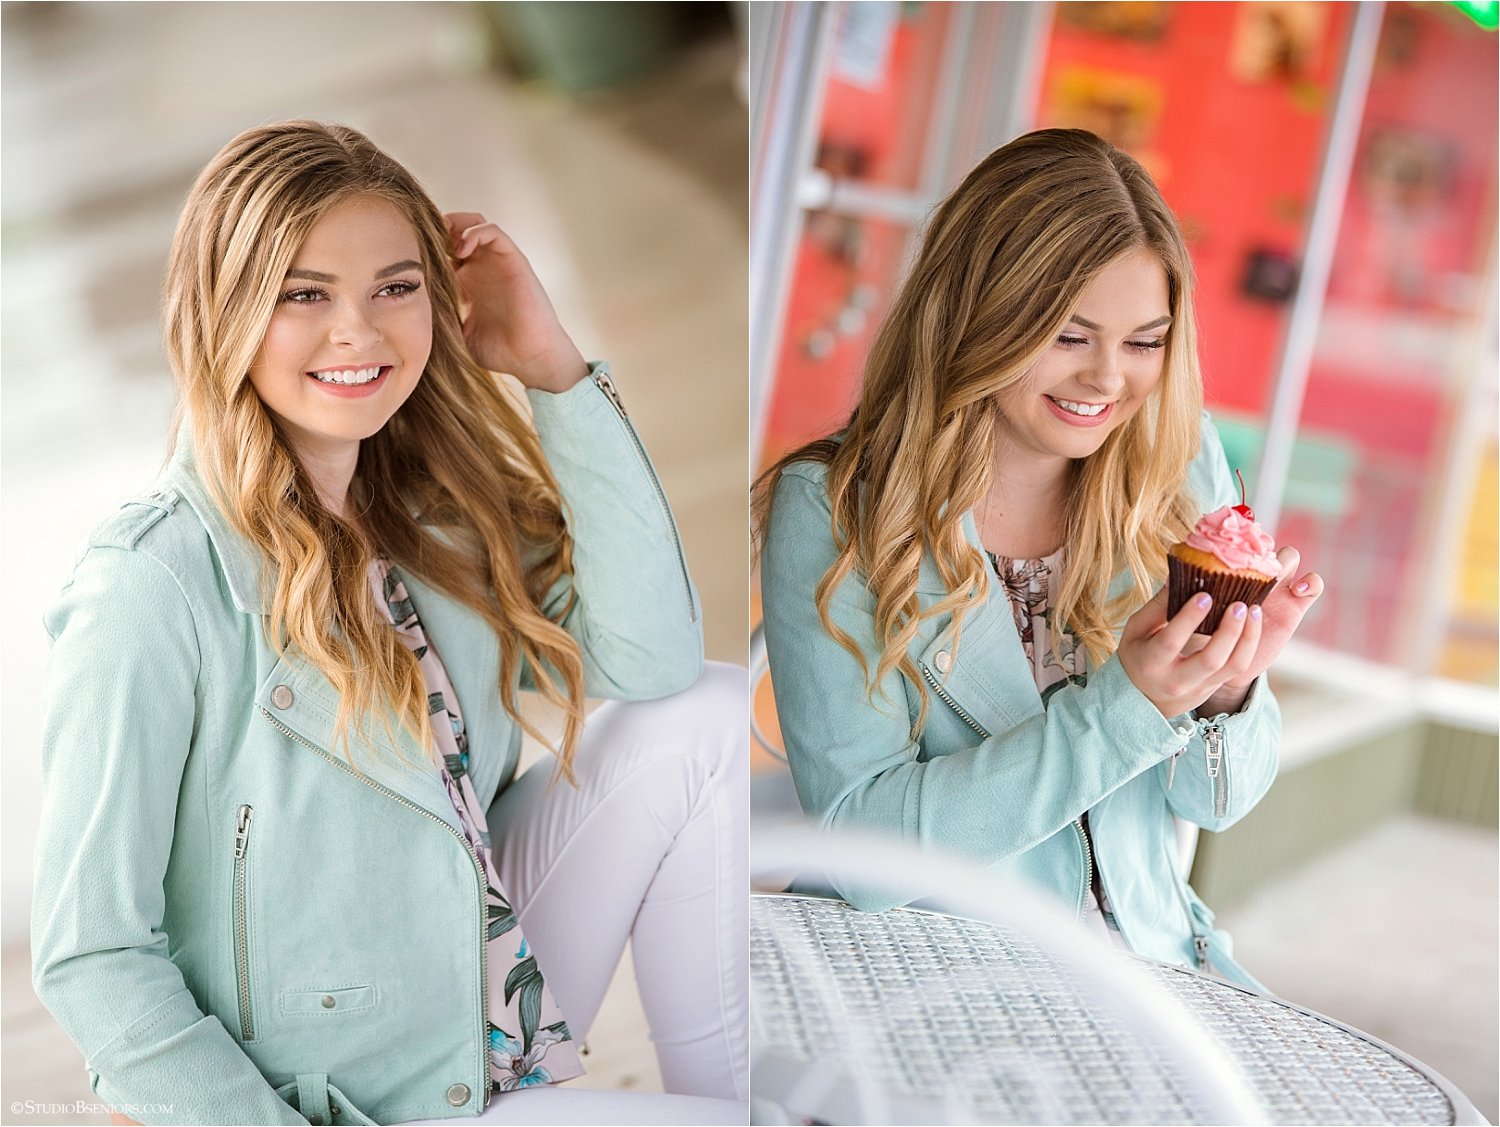 High School senior girl eating a cupcake at Small Cakes in Issaquah